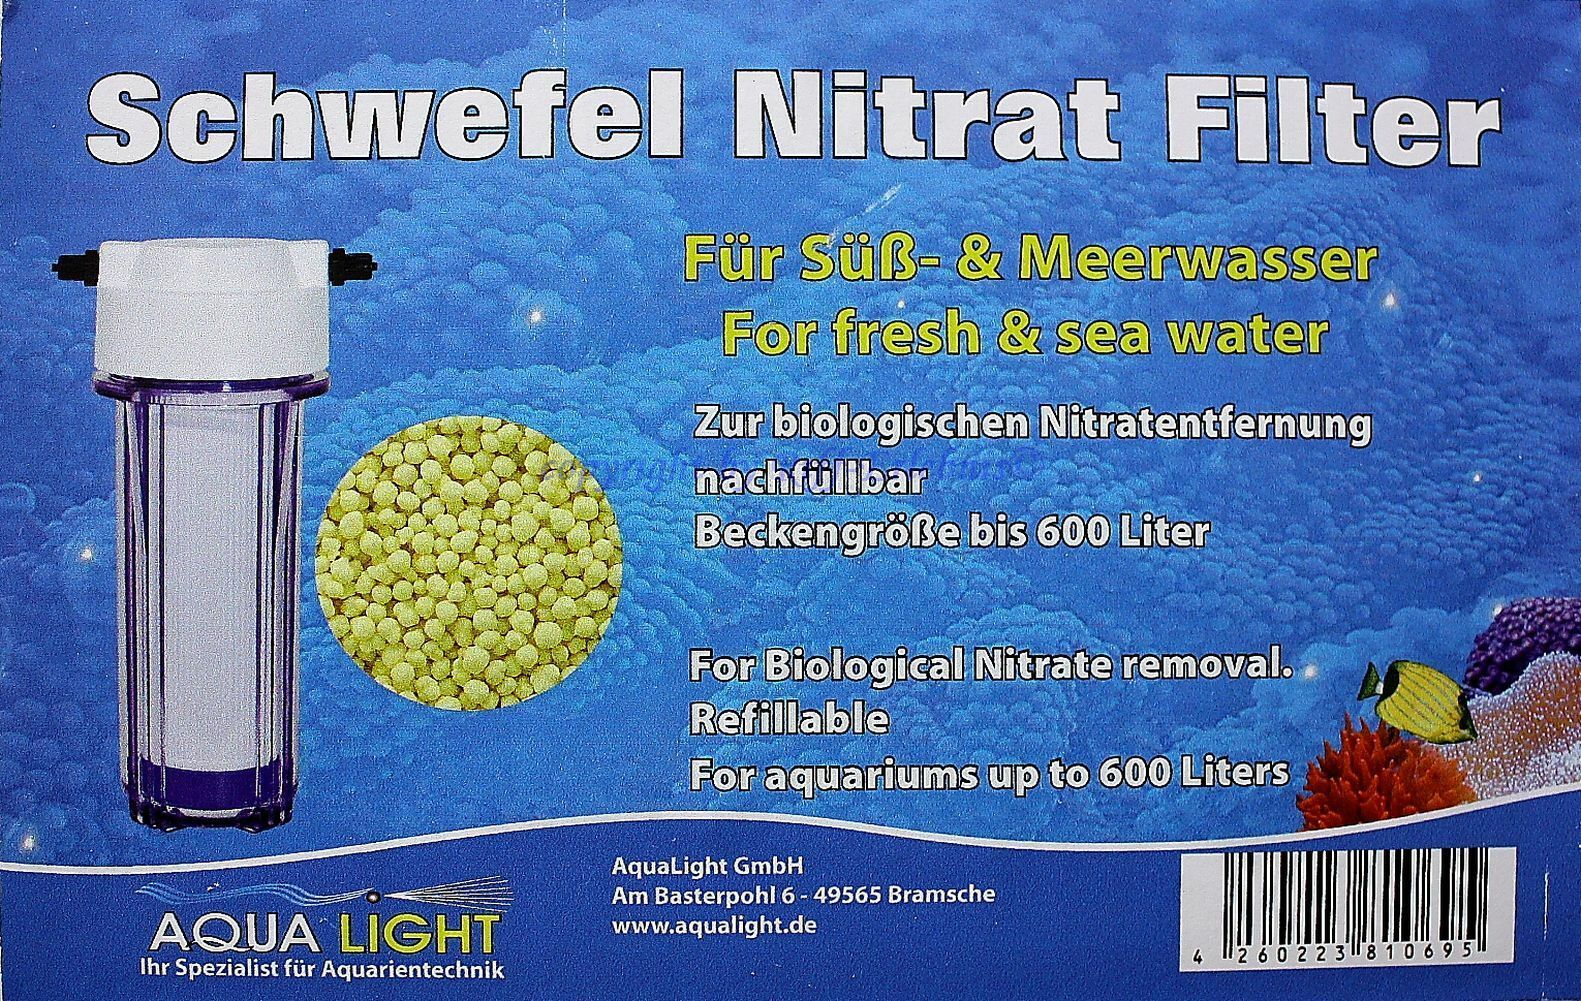 Aqua Light Sulphur Nitrate Filter for Sweet and Saltwater up to 600L